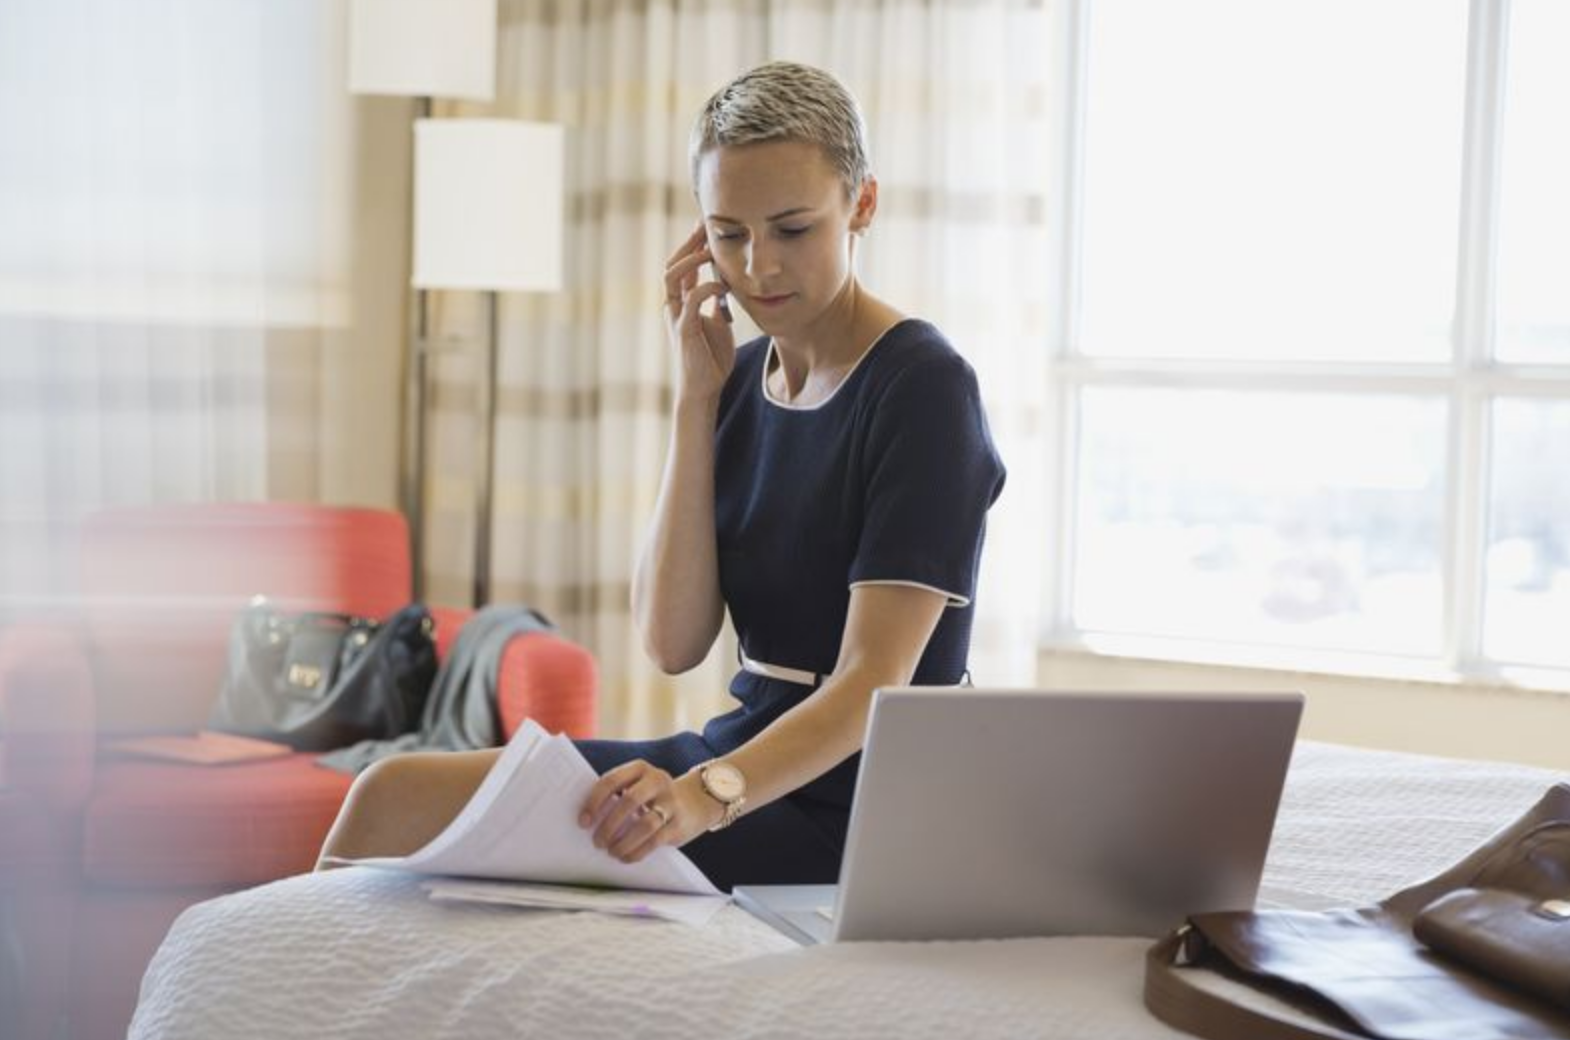 Increasingly, customers expect a hotel guest experience that anticipates their wants and needs.